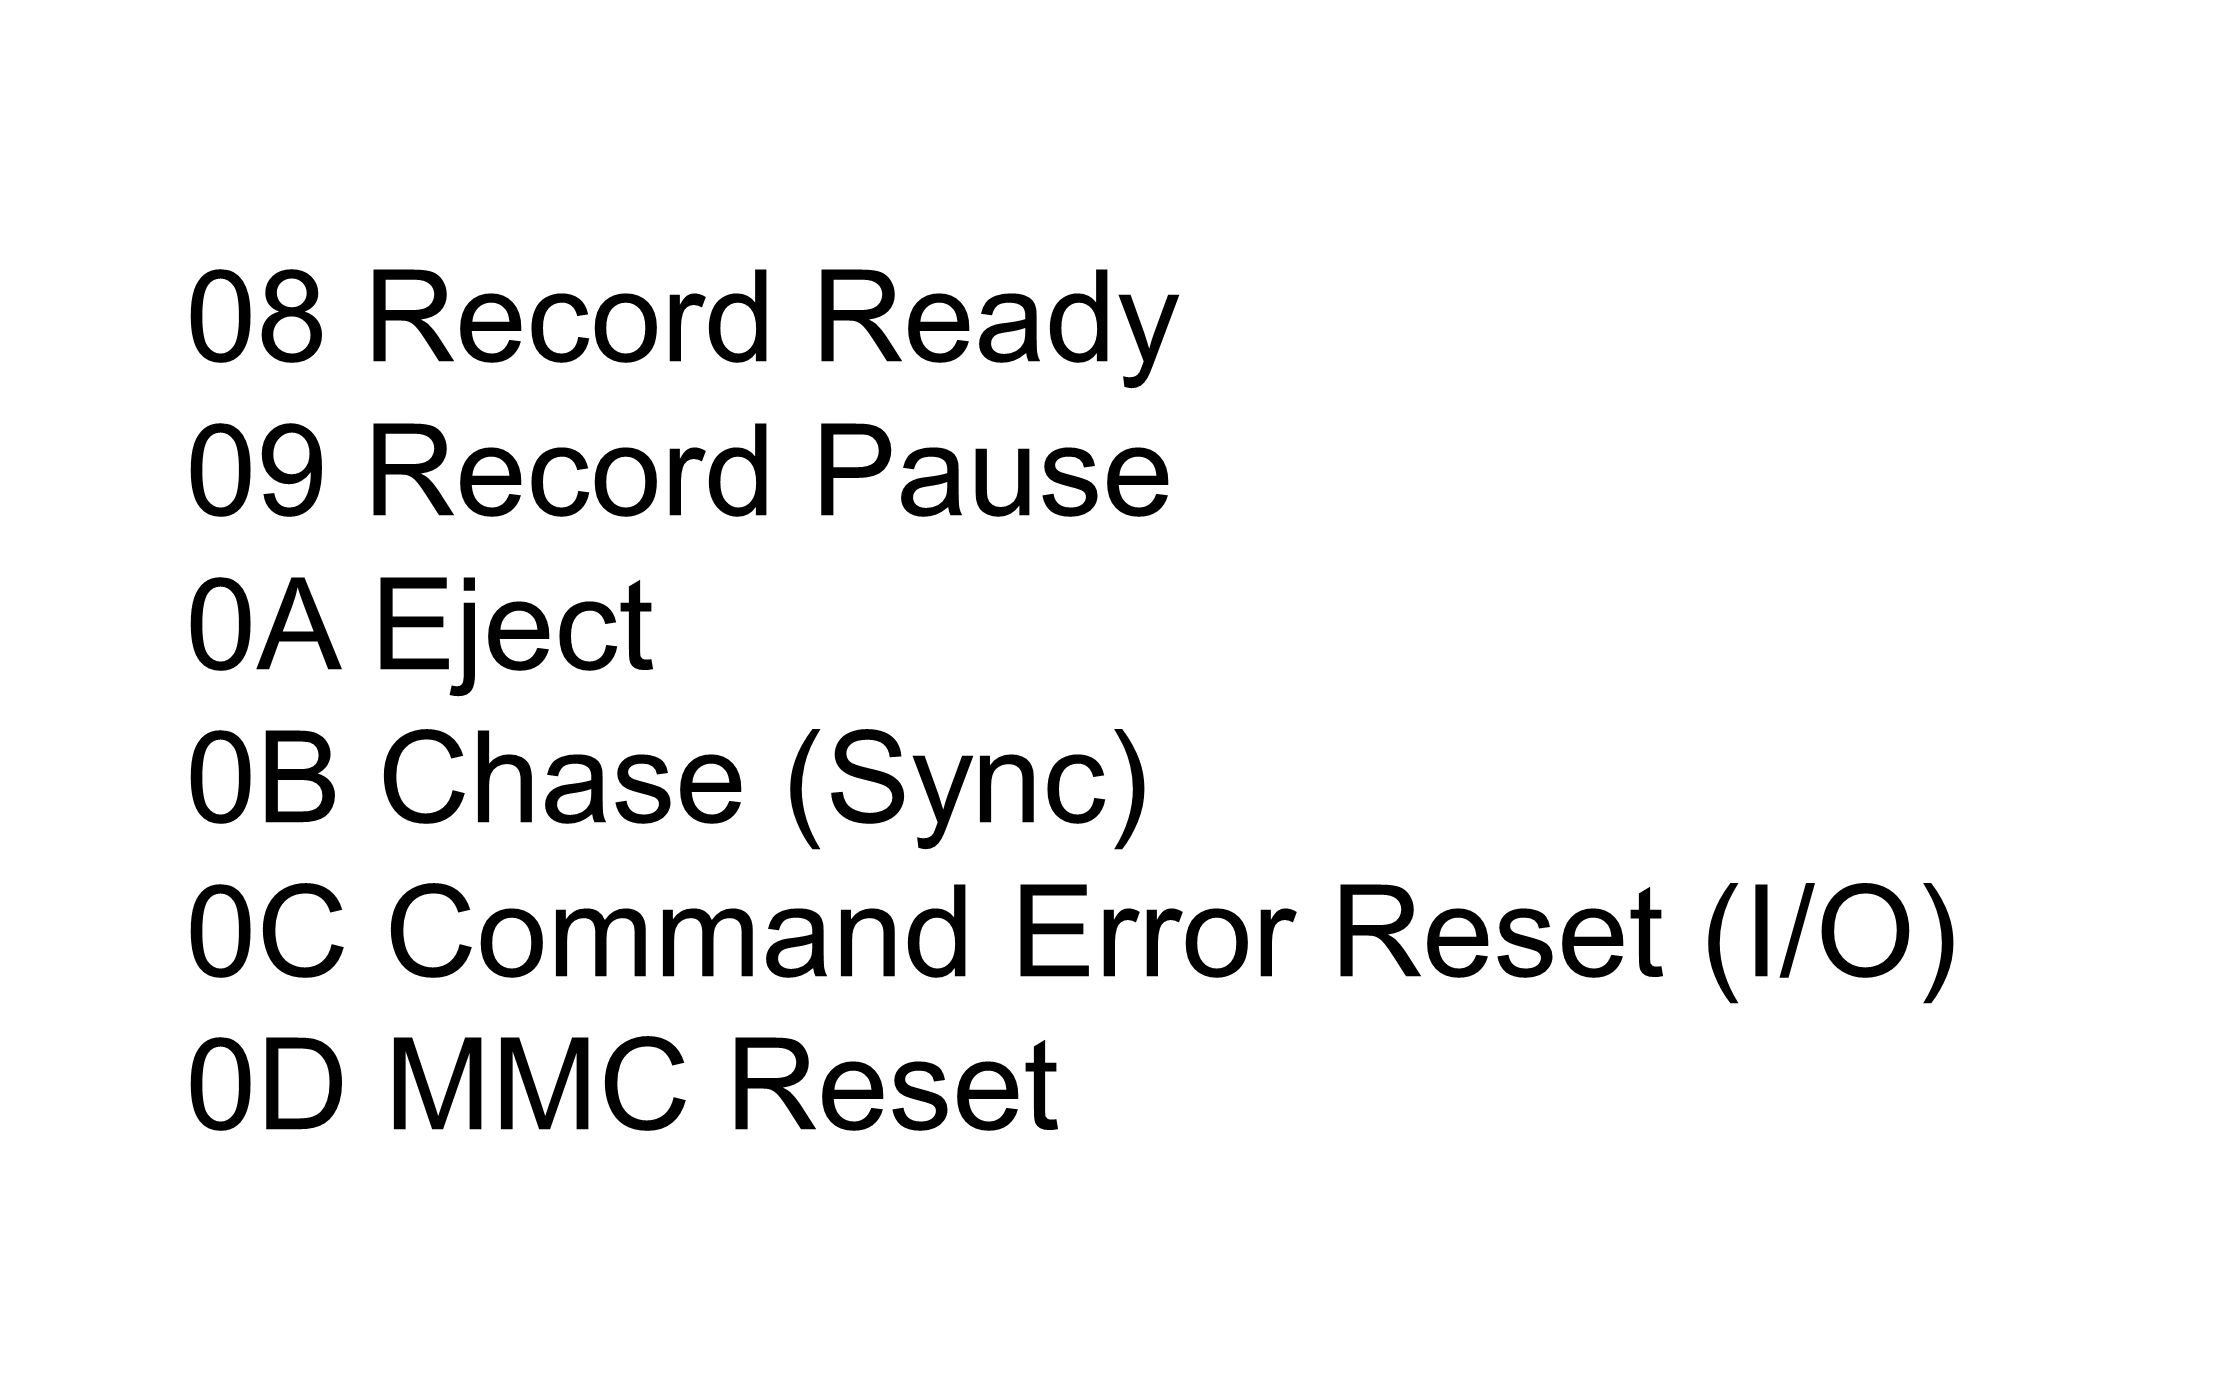 08 Record Ready 09 Record Pause 0A Eject 0B Chase (Sync) 0C Command Error Reset (I/O) 0D MMC Reset